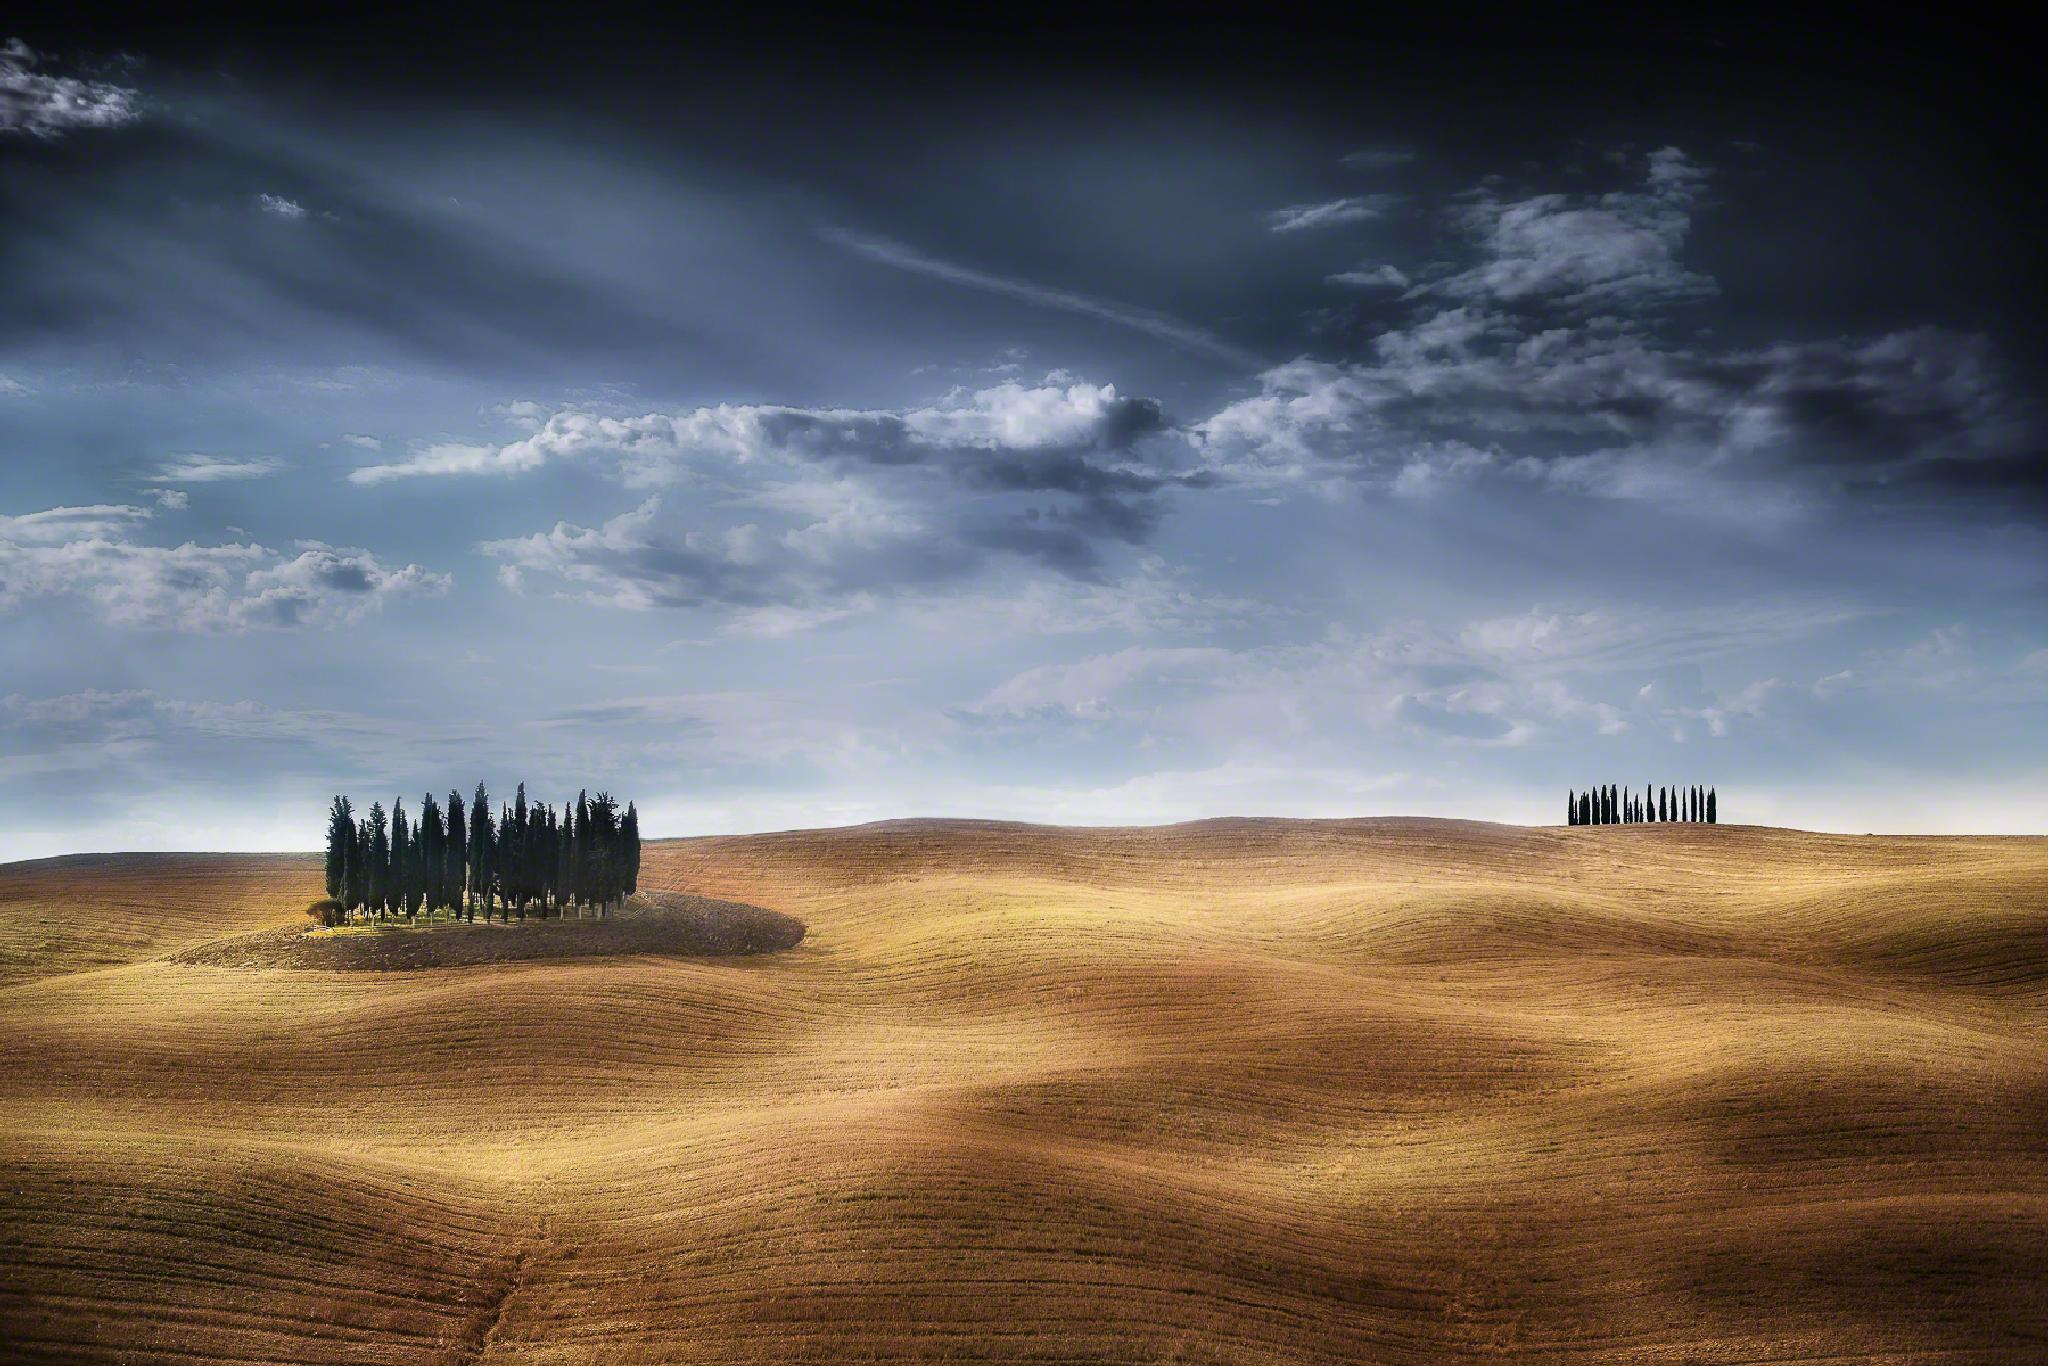 Fields of Gold by Manfred Voss